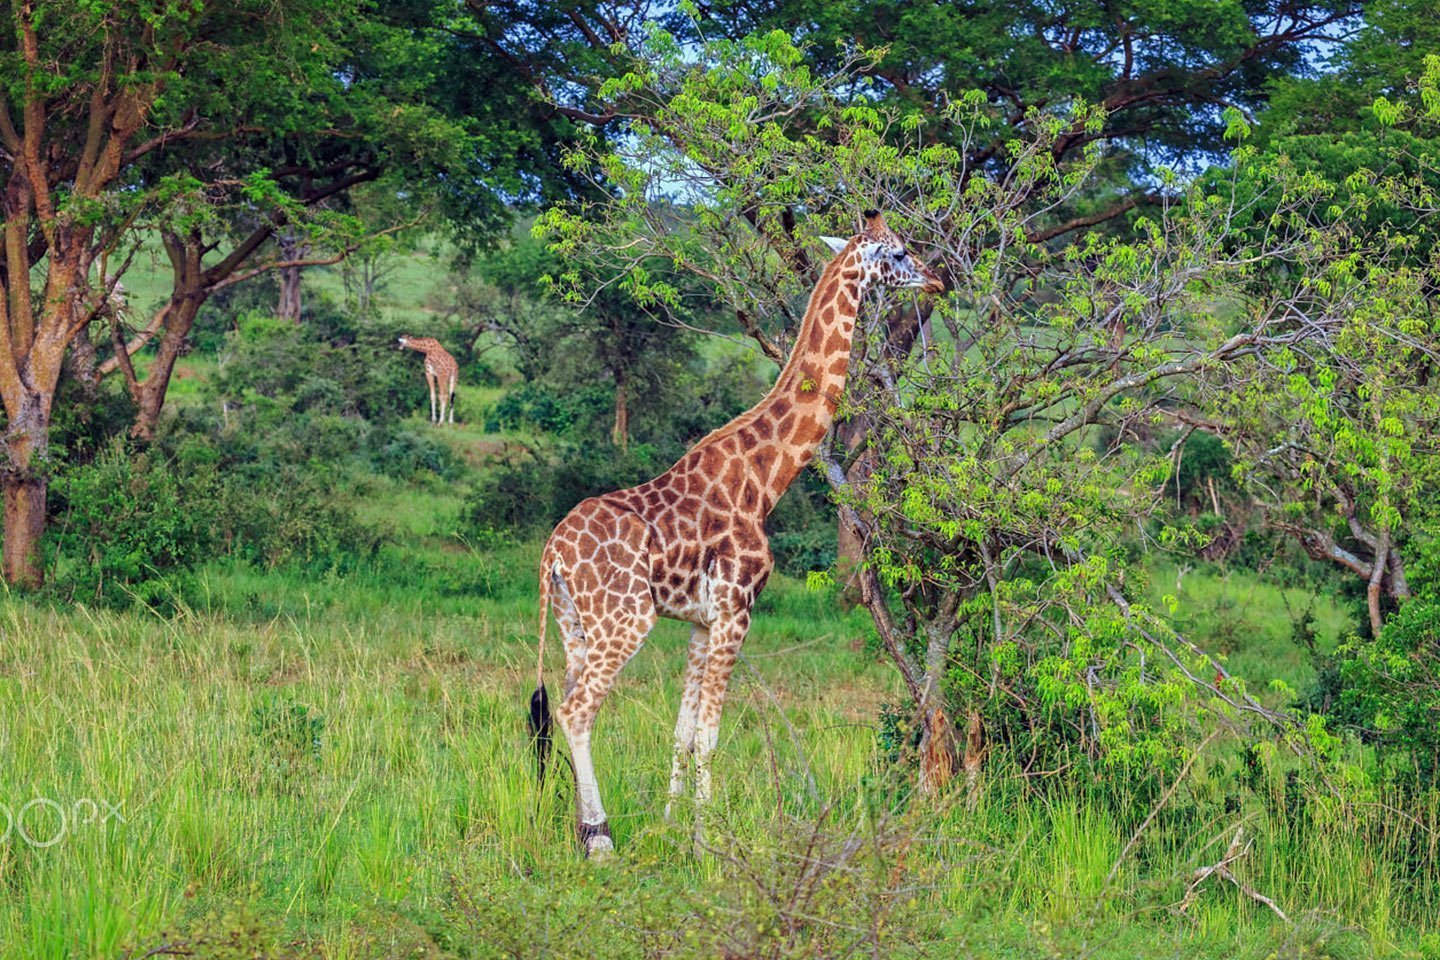 Day 10: Northbound to Murchison Falls National Park